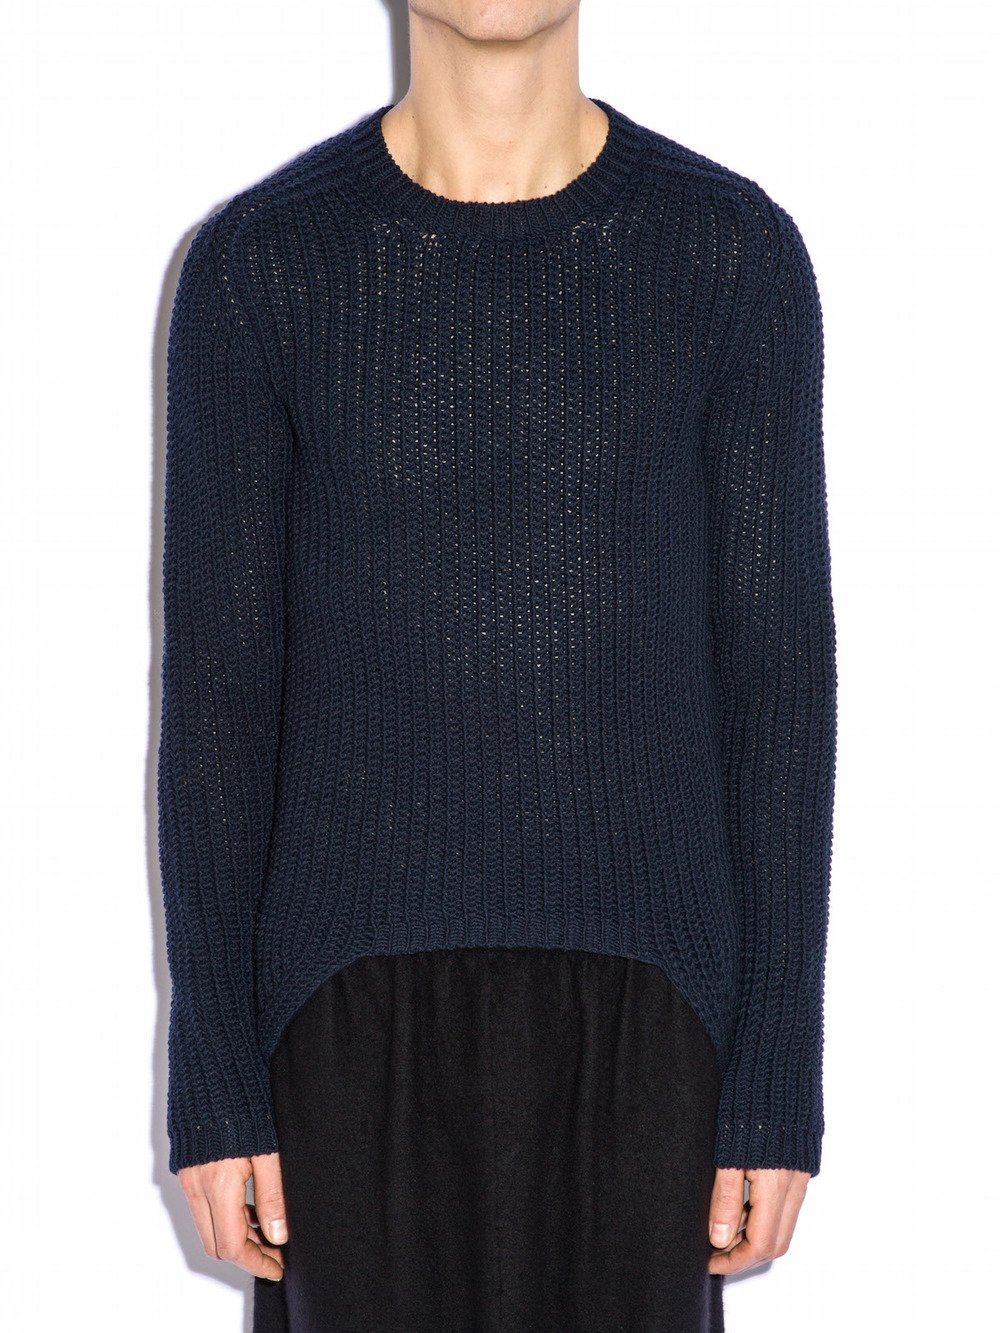 cashmere crew neck jumper - Green Rick Owens Genuine Cheap Online Outlet Store Cheap Price Free Shipping 2018 New J61CBNnw